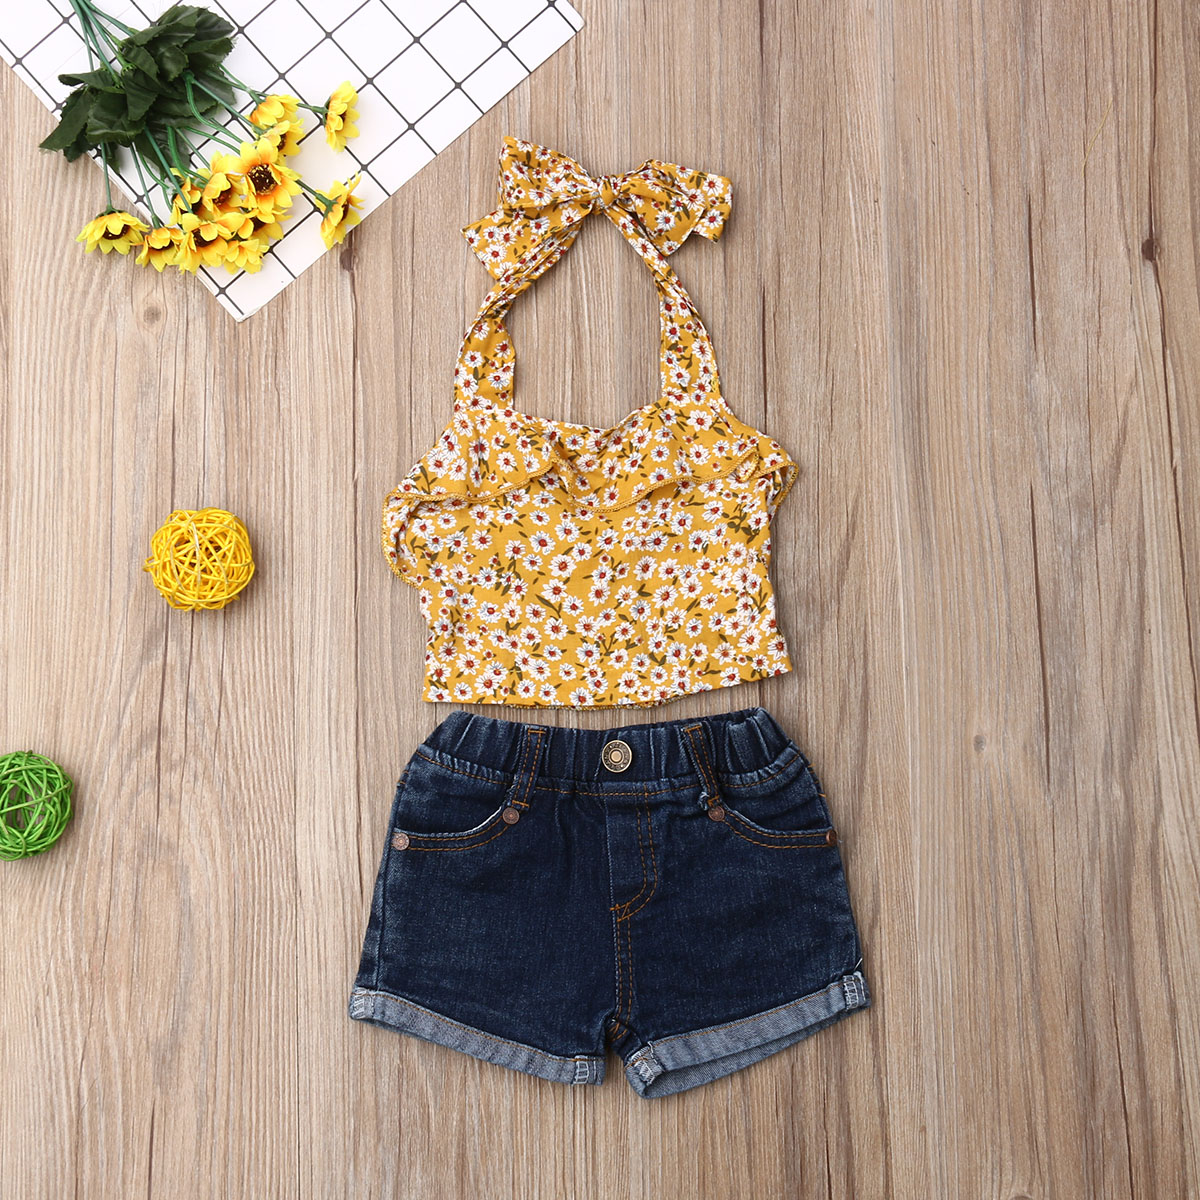 Emmababy Summer Toddler Baby Girl Clothes Flower Print Strap Tops Denim Short Pants 2Pcs Outfits Clothes Summer